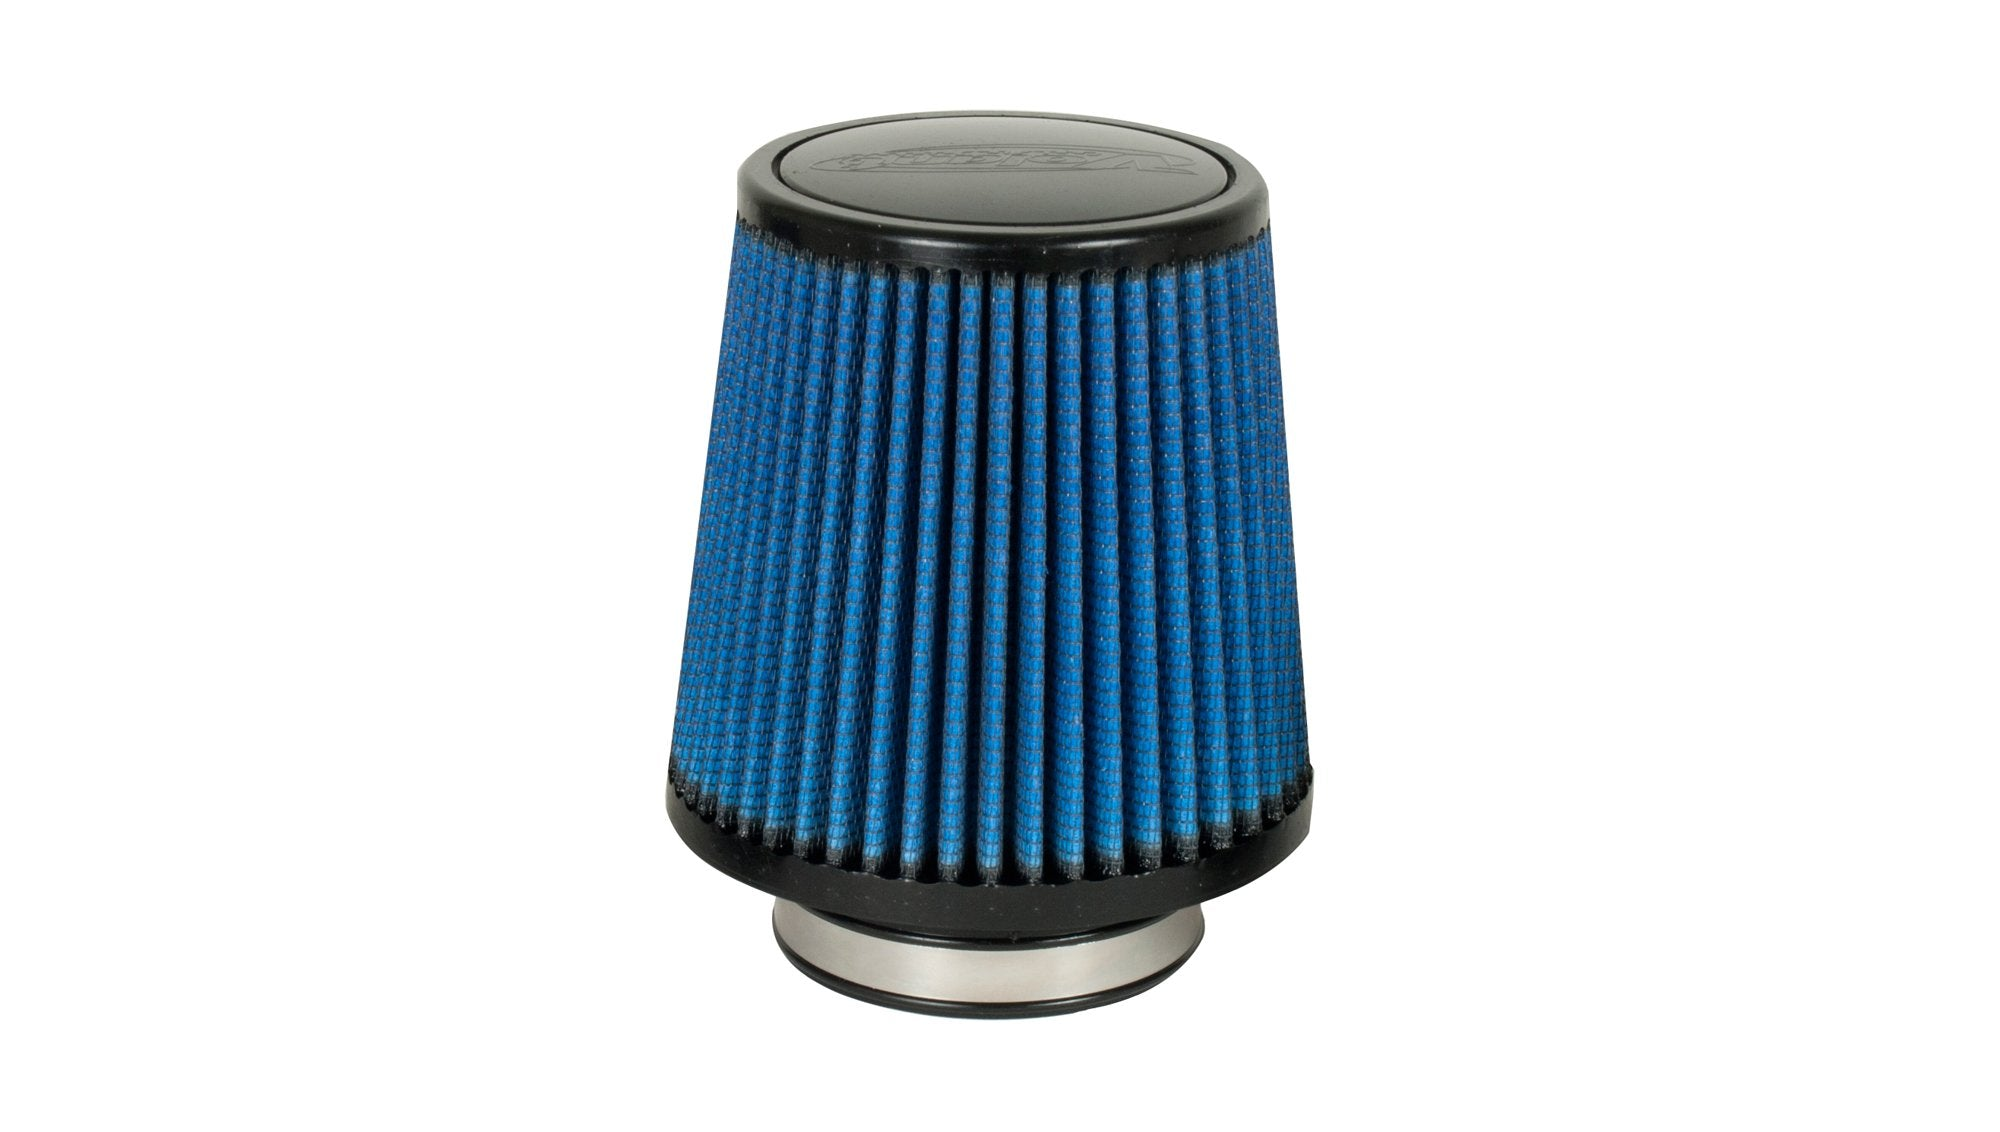 1996-2005 Chevrolet Astro Oiled Air Intake Air Filter - 5113